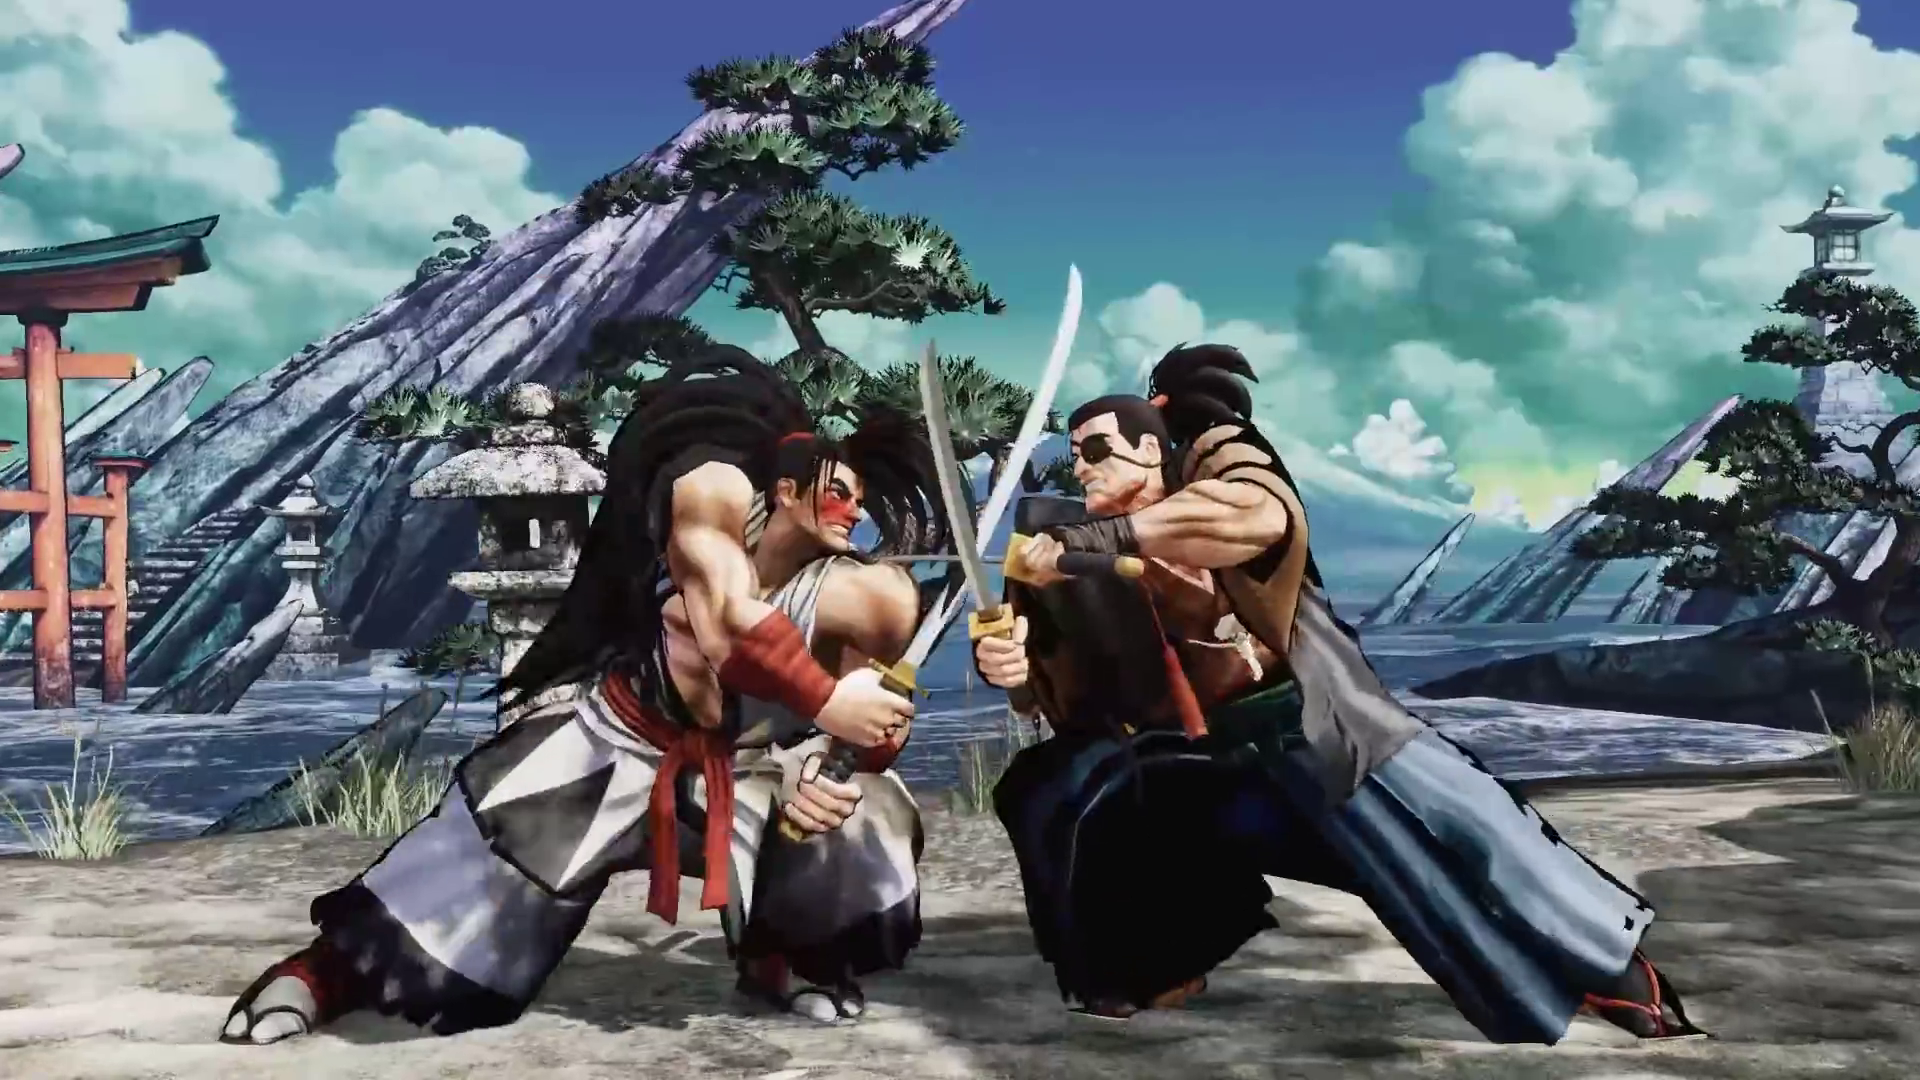 SNK Announces Samurai Shodown Release Date for Switch/PS4/XO and PC